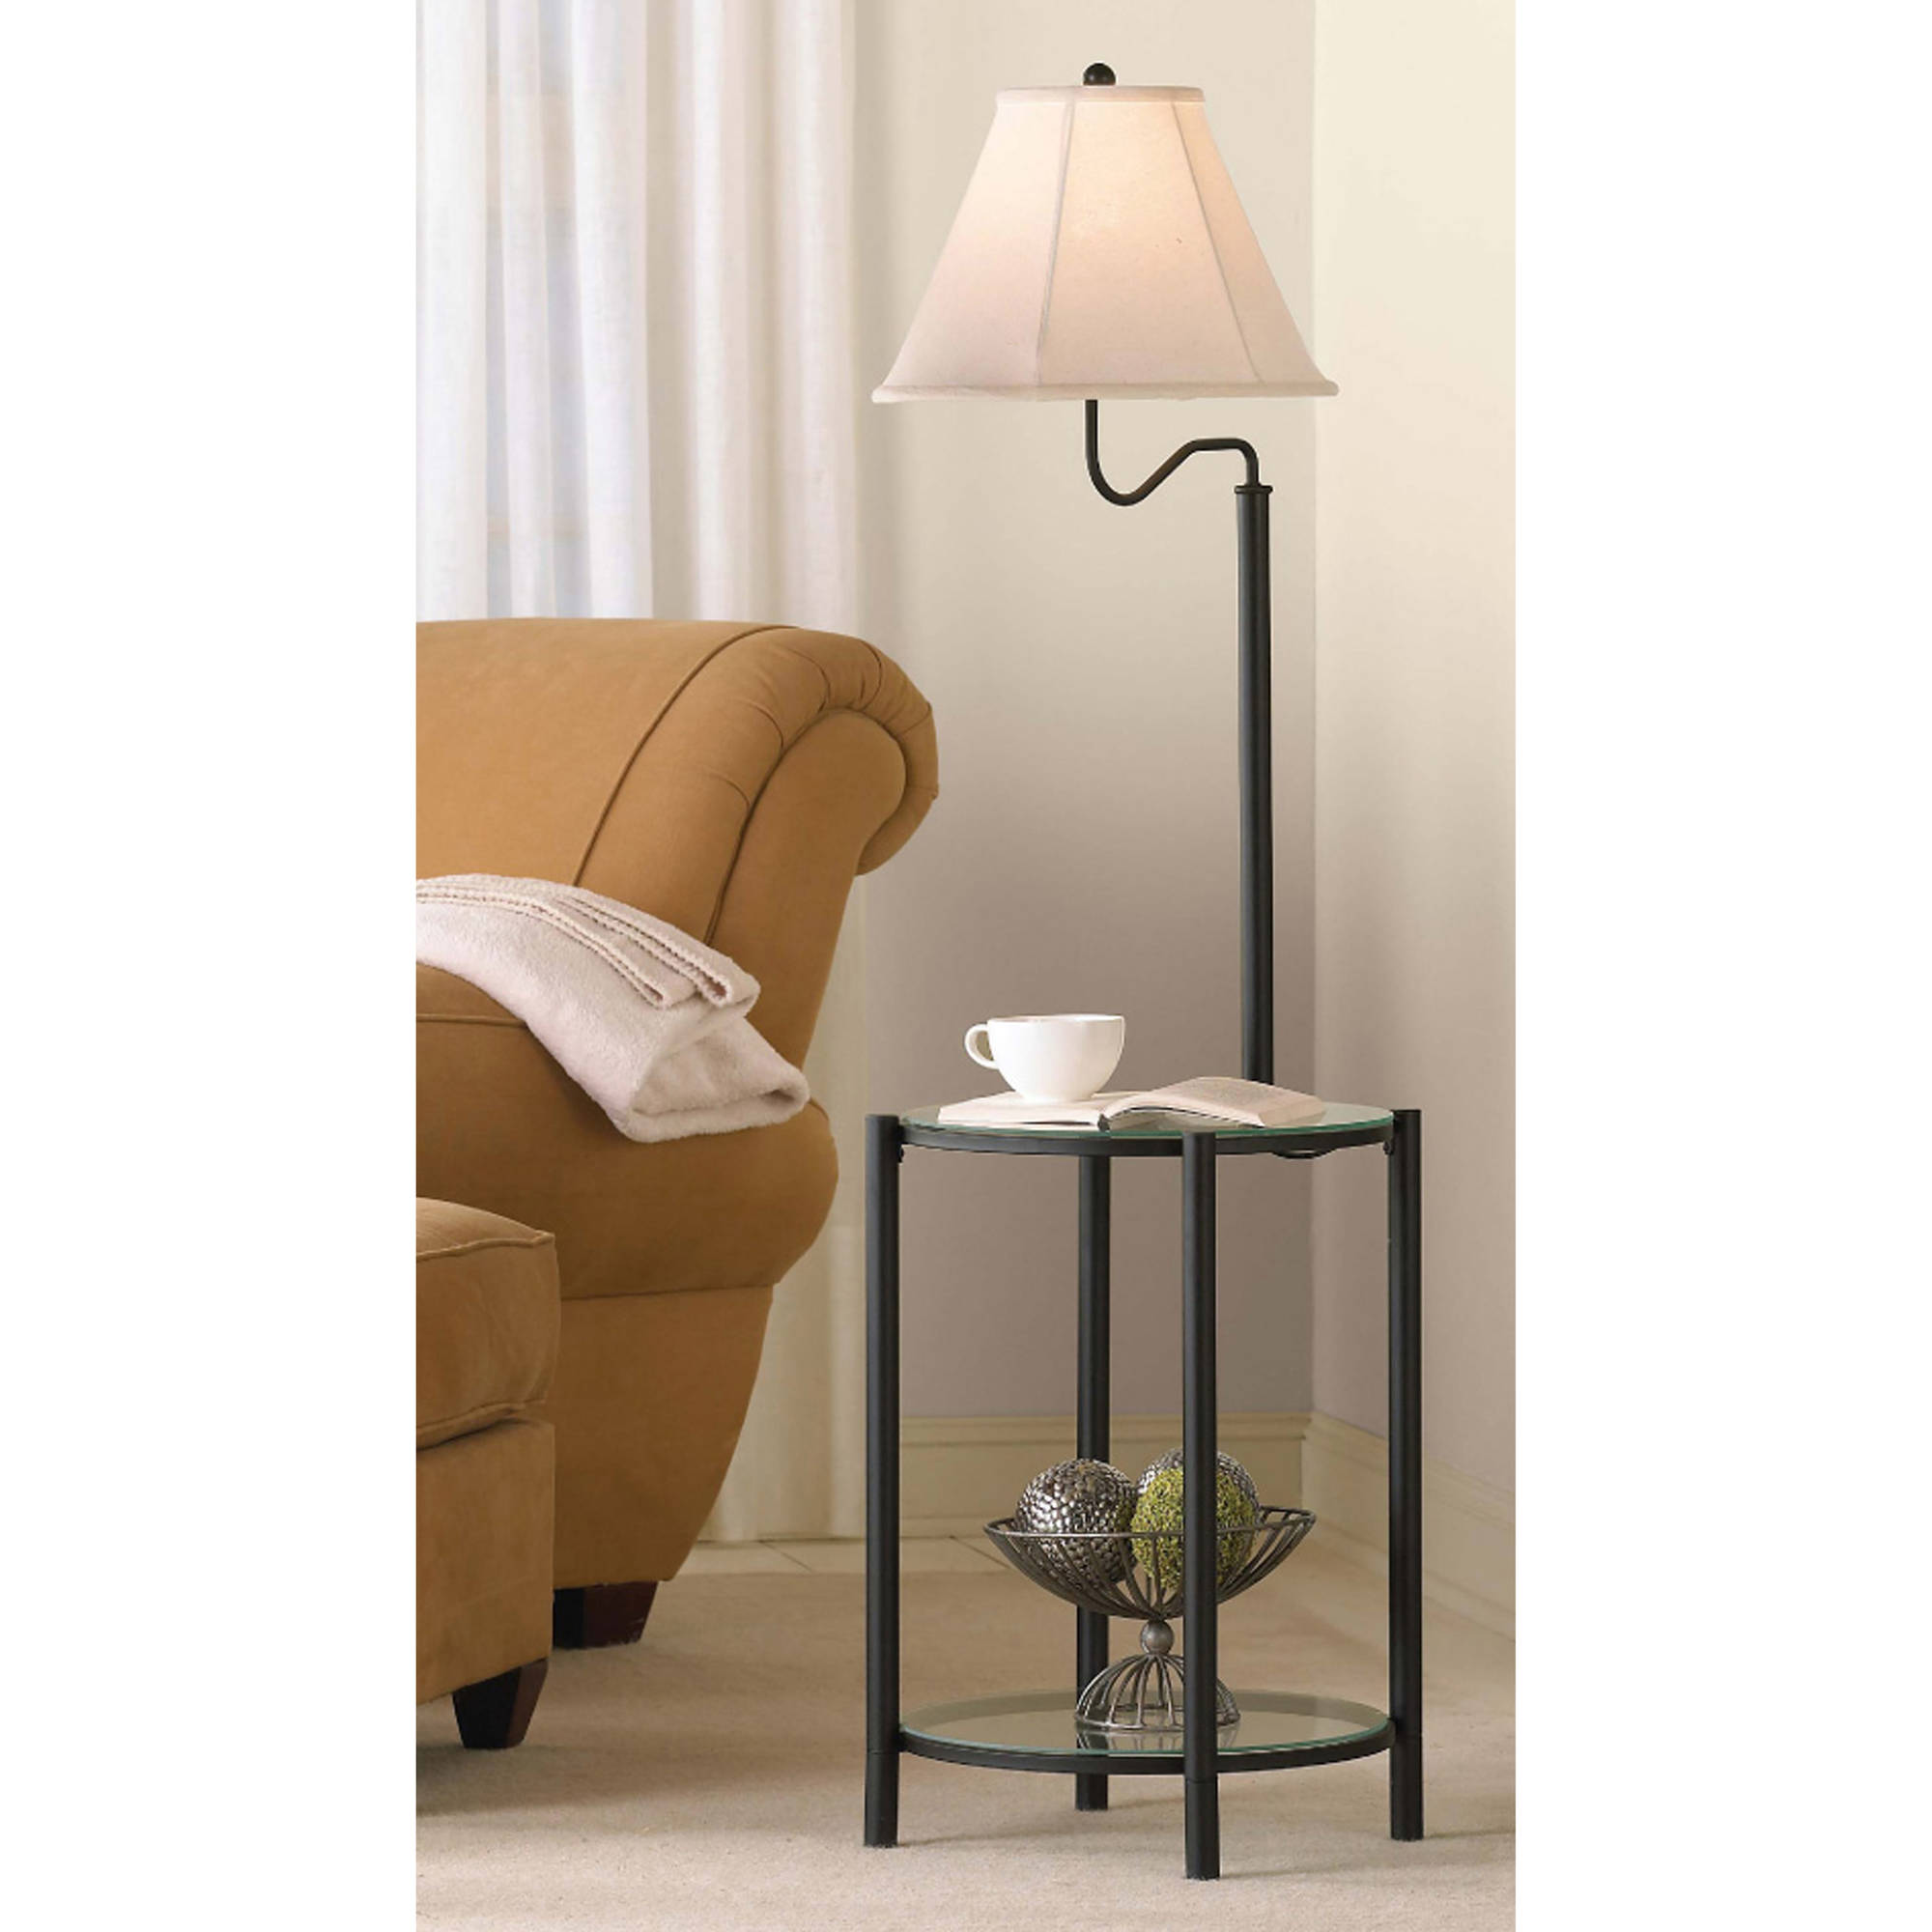 lamp and copper manhattan furniture tables side table nest storage